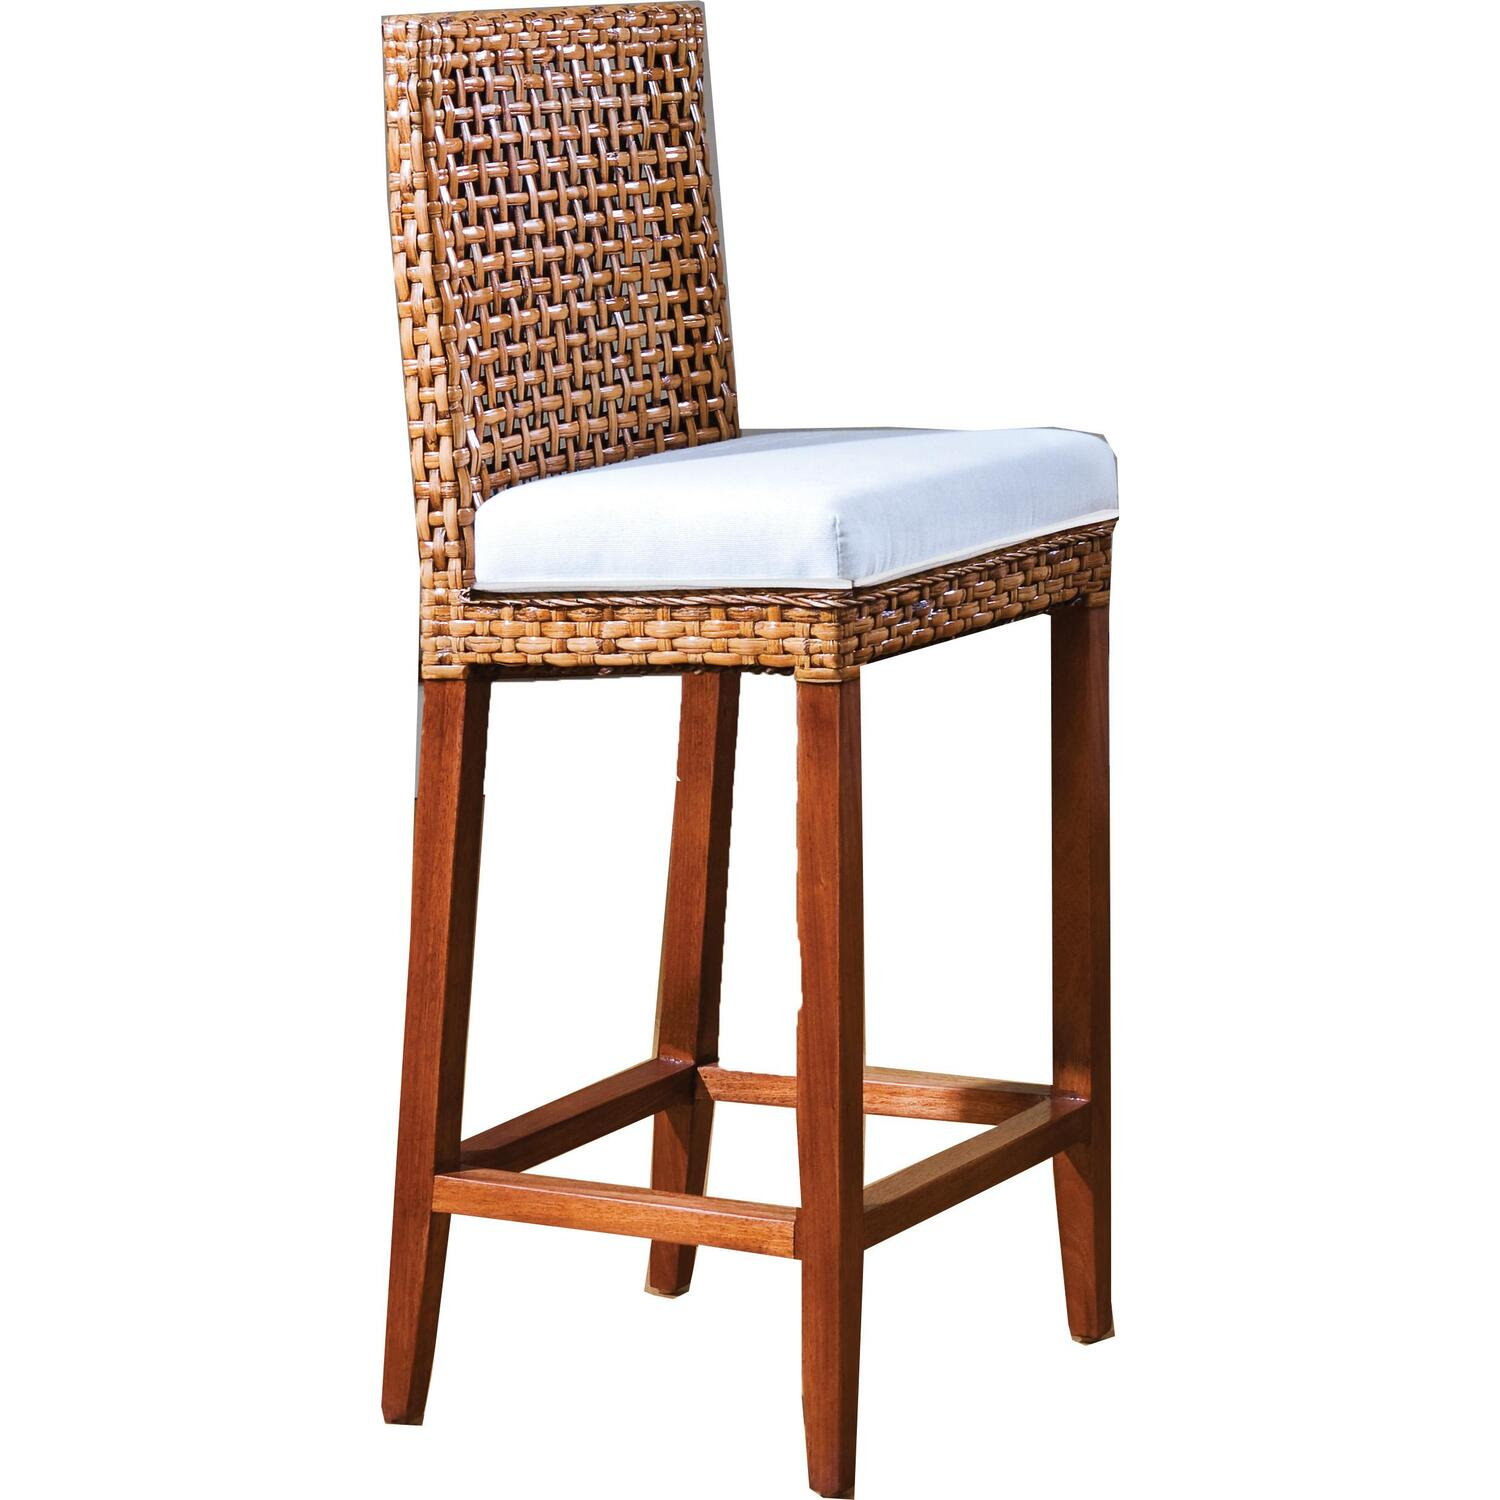 Indoor Rattan & Wicker Bar Stool | OJCommerce